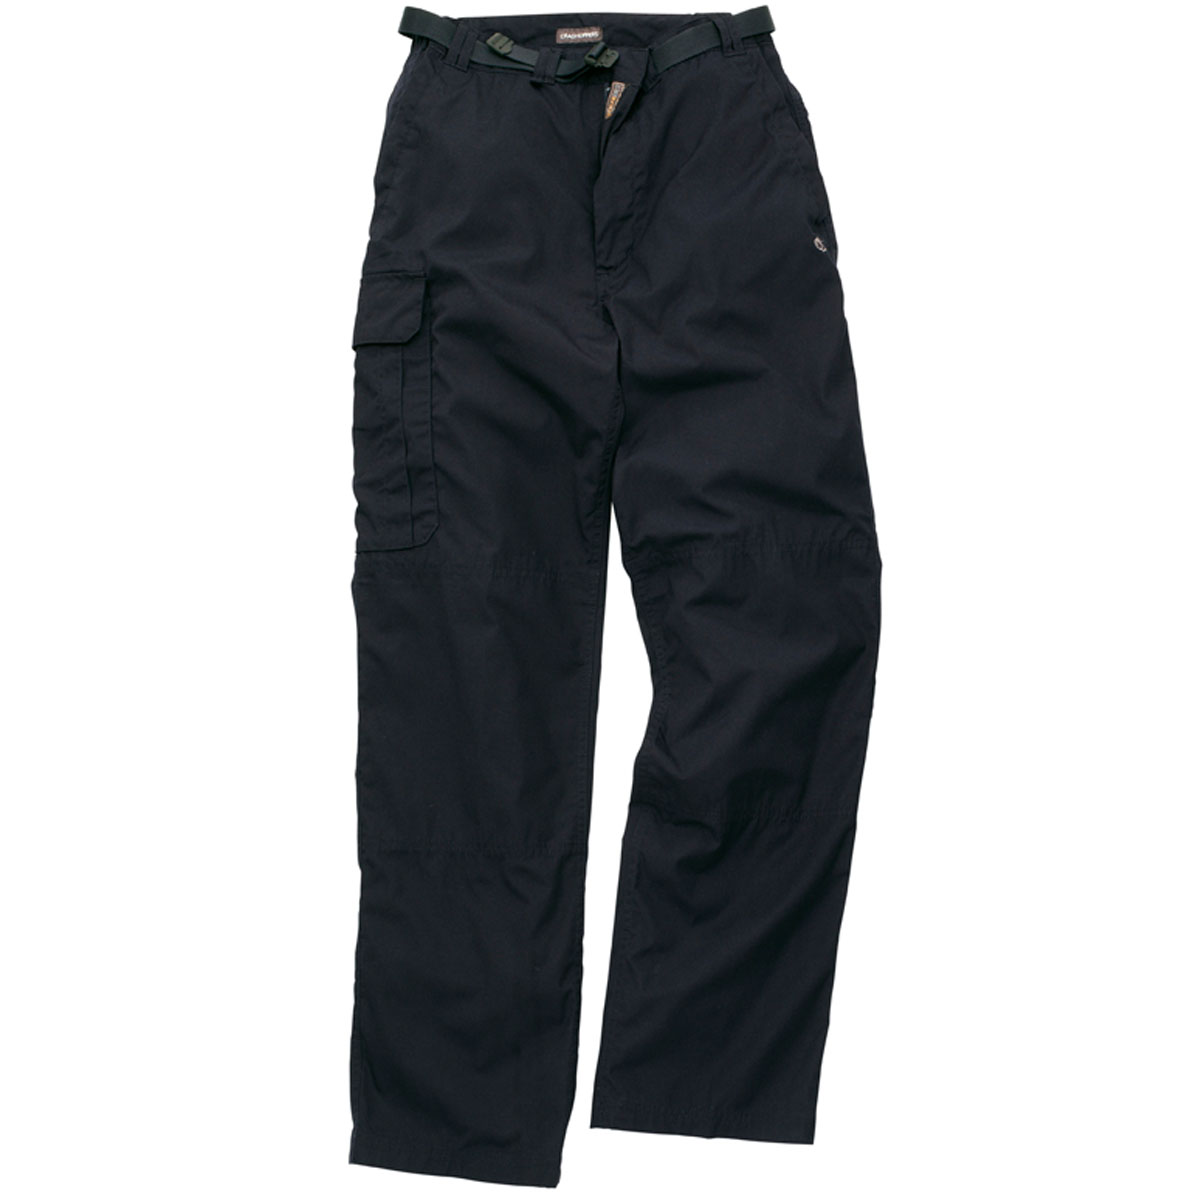 Step outside and take the great outdoors in your stride when you're wearing the perfect pair of men's walking trousers. Throughout our collection of men's hiking trousers you'll find something perfect for all walking eventualities.